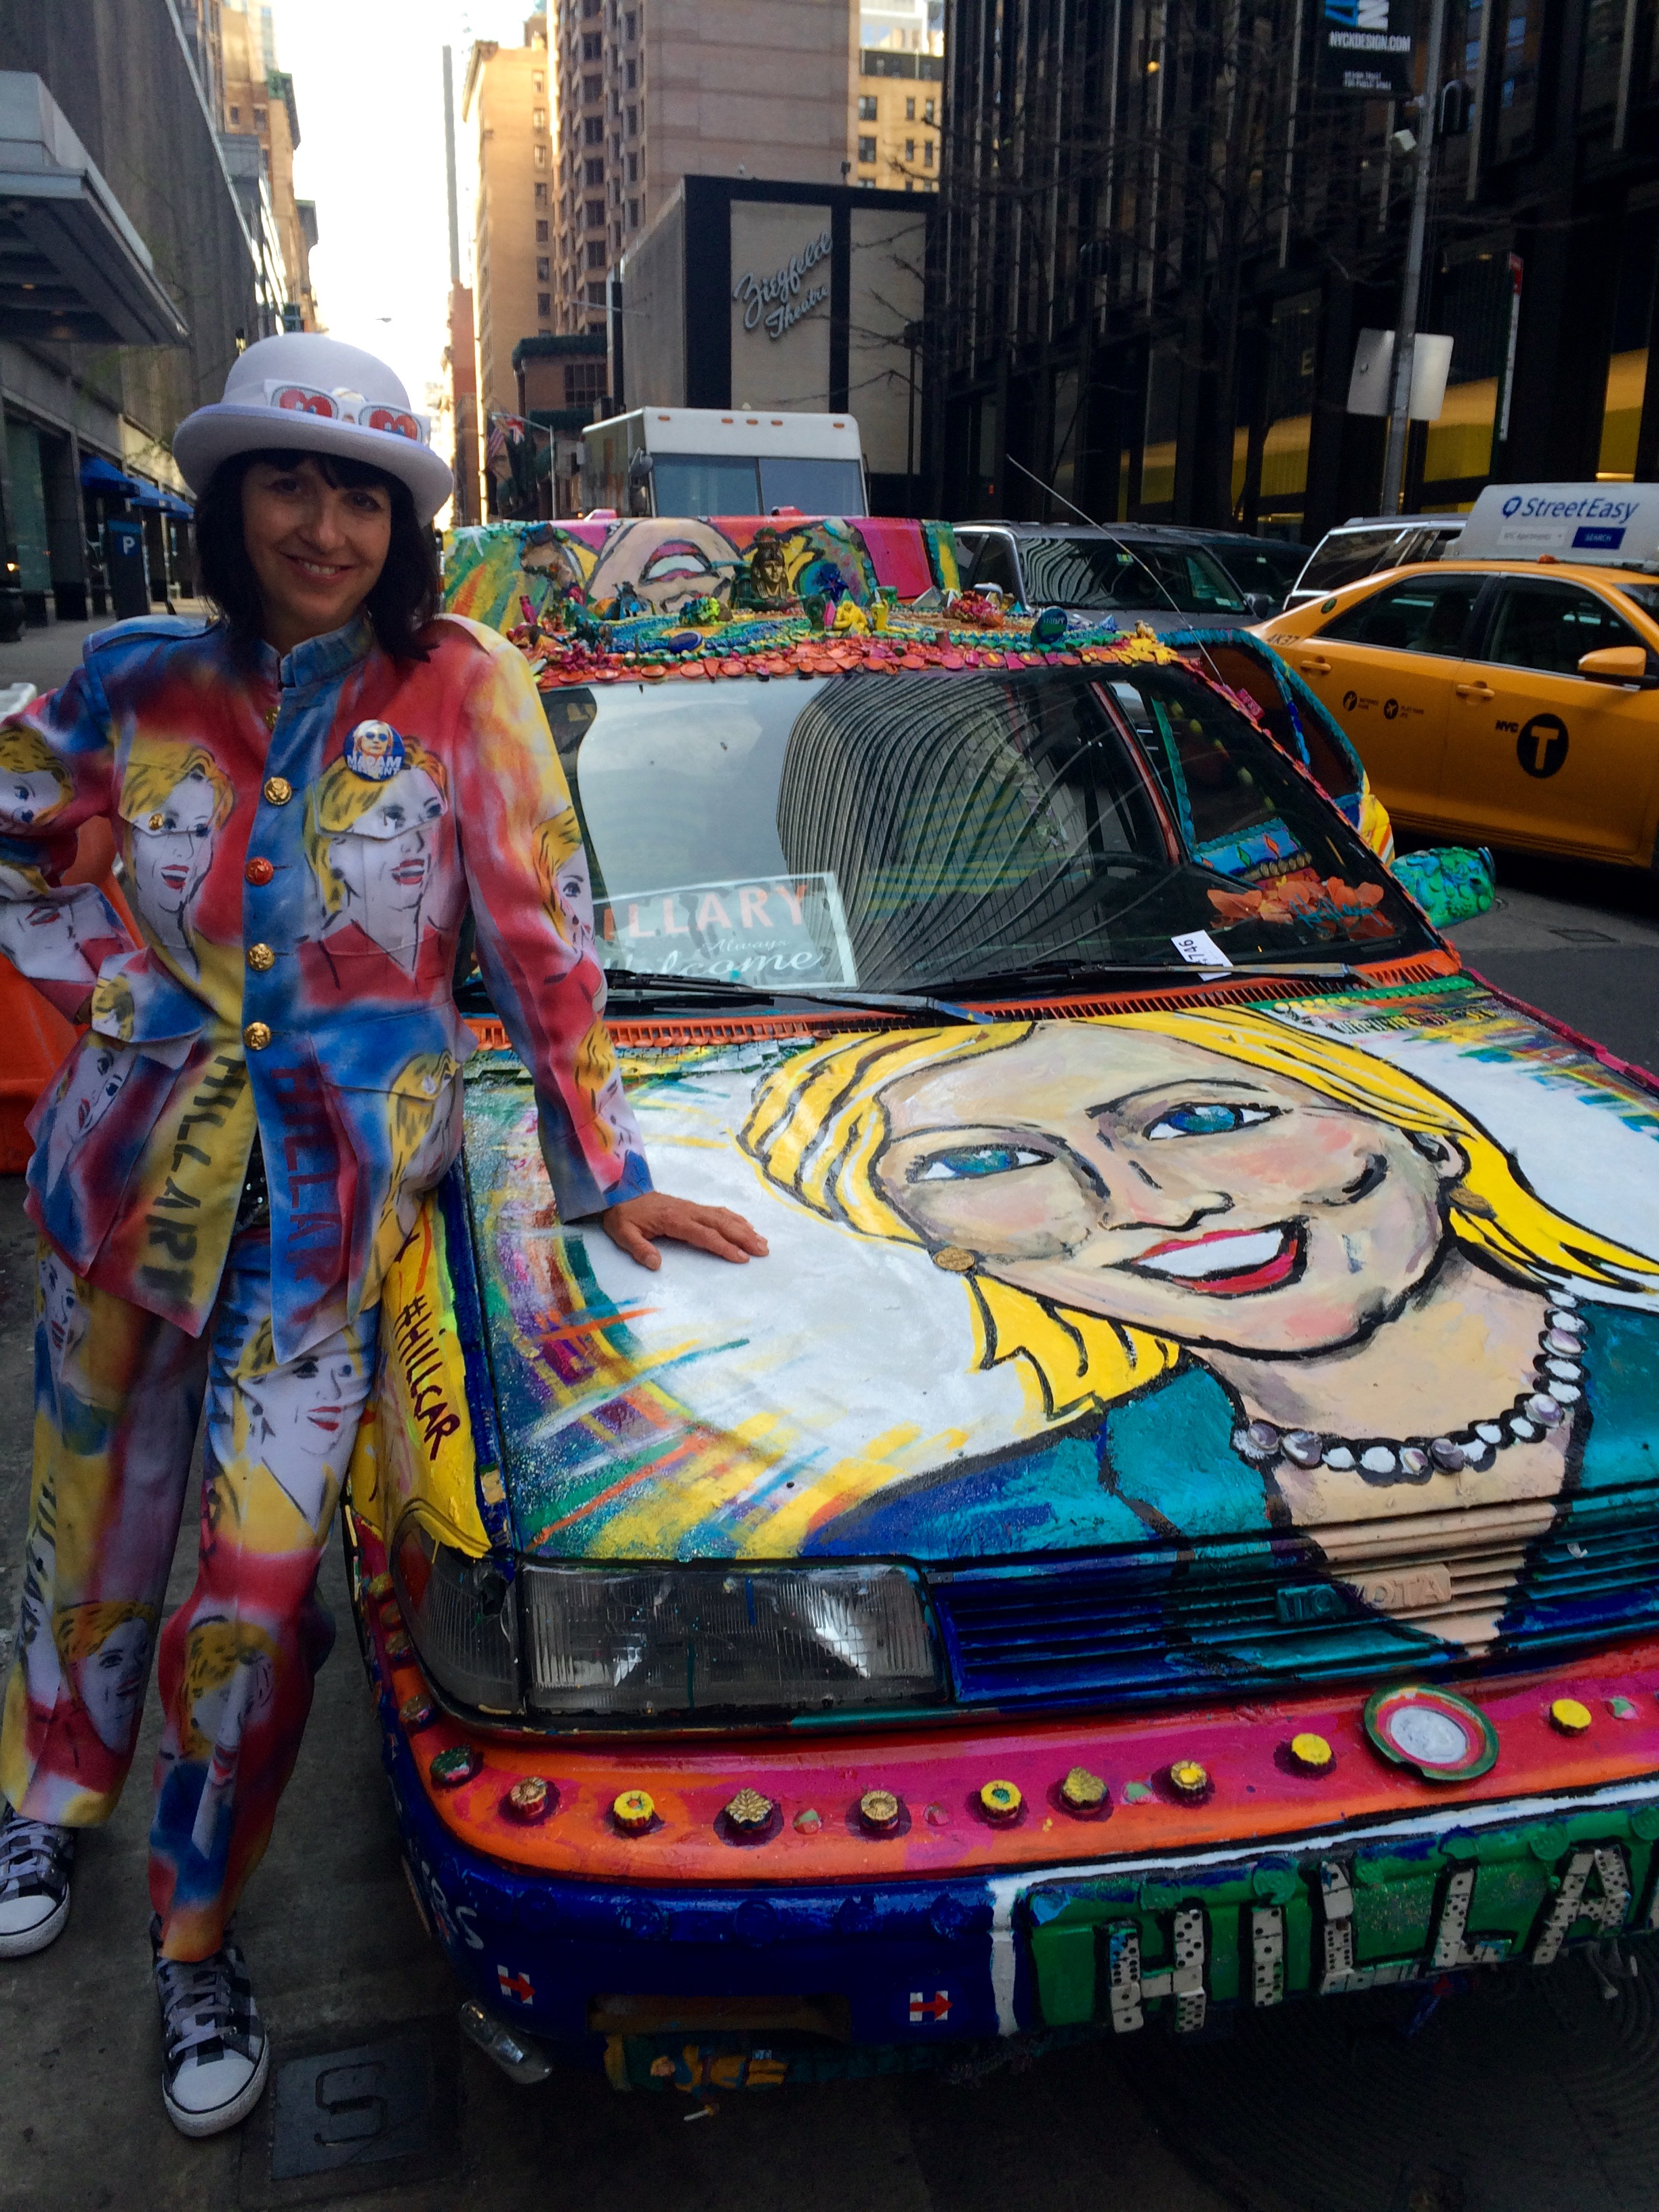 Gretchen Baer in her Hillary Clinton pantsuit, next to her Hillary Clinton car